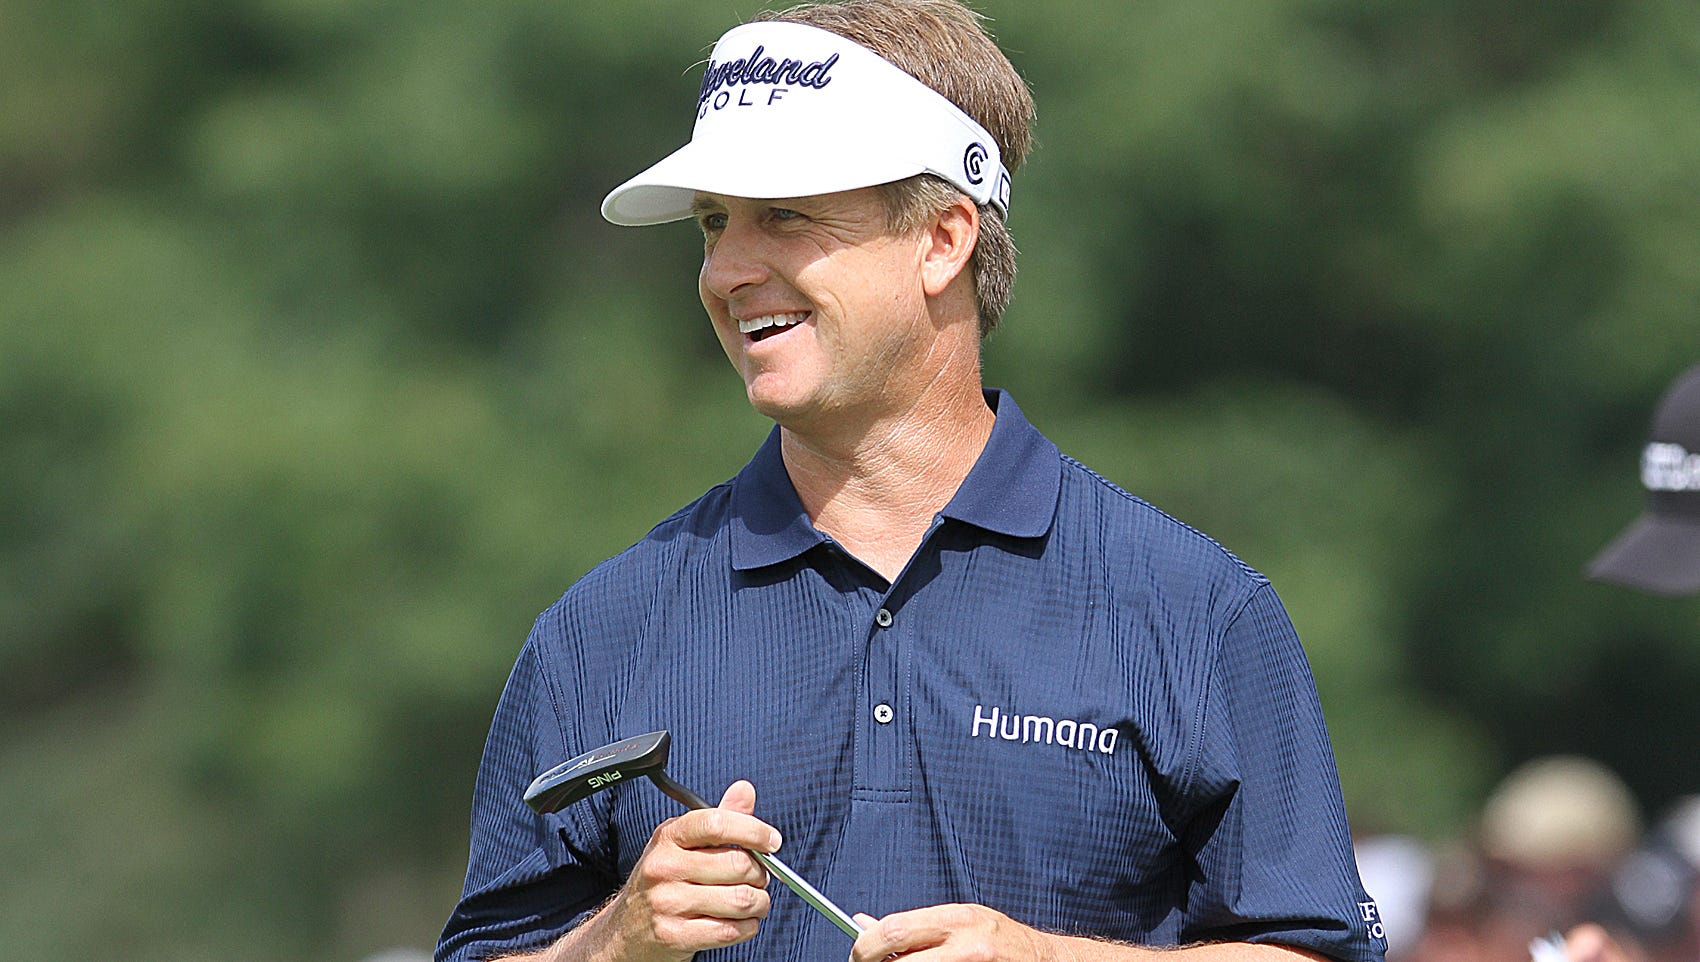 David Toms smiles after sinking a putt.